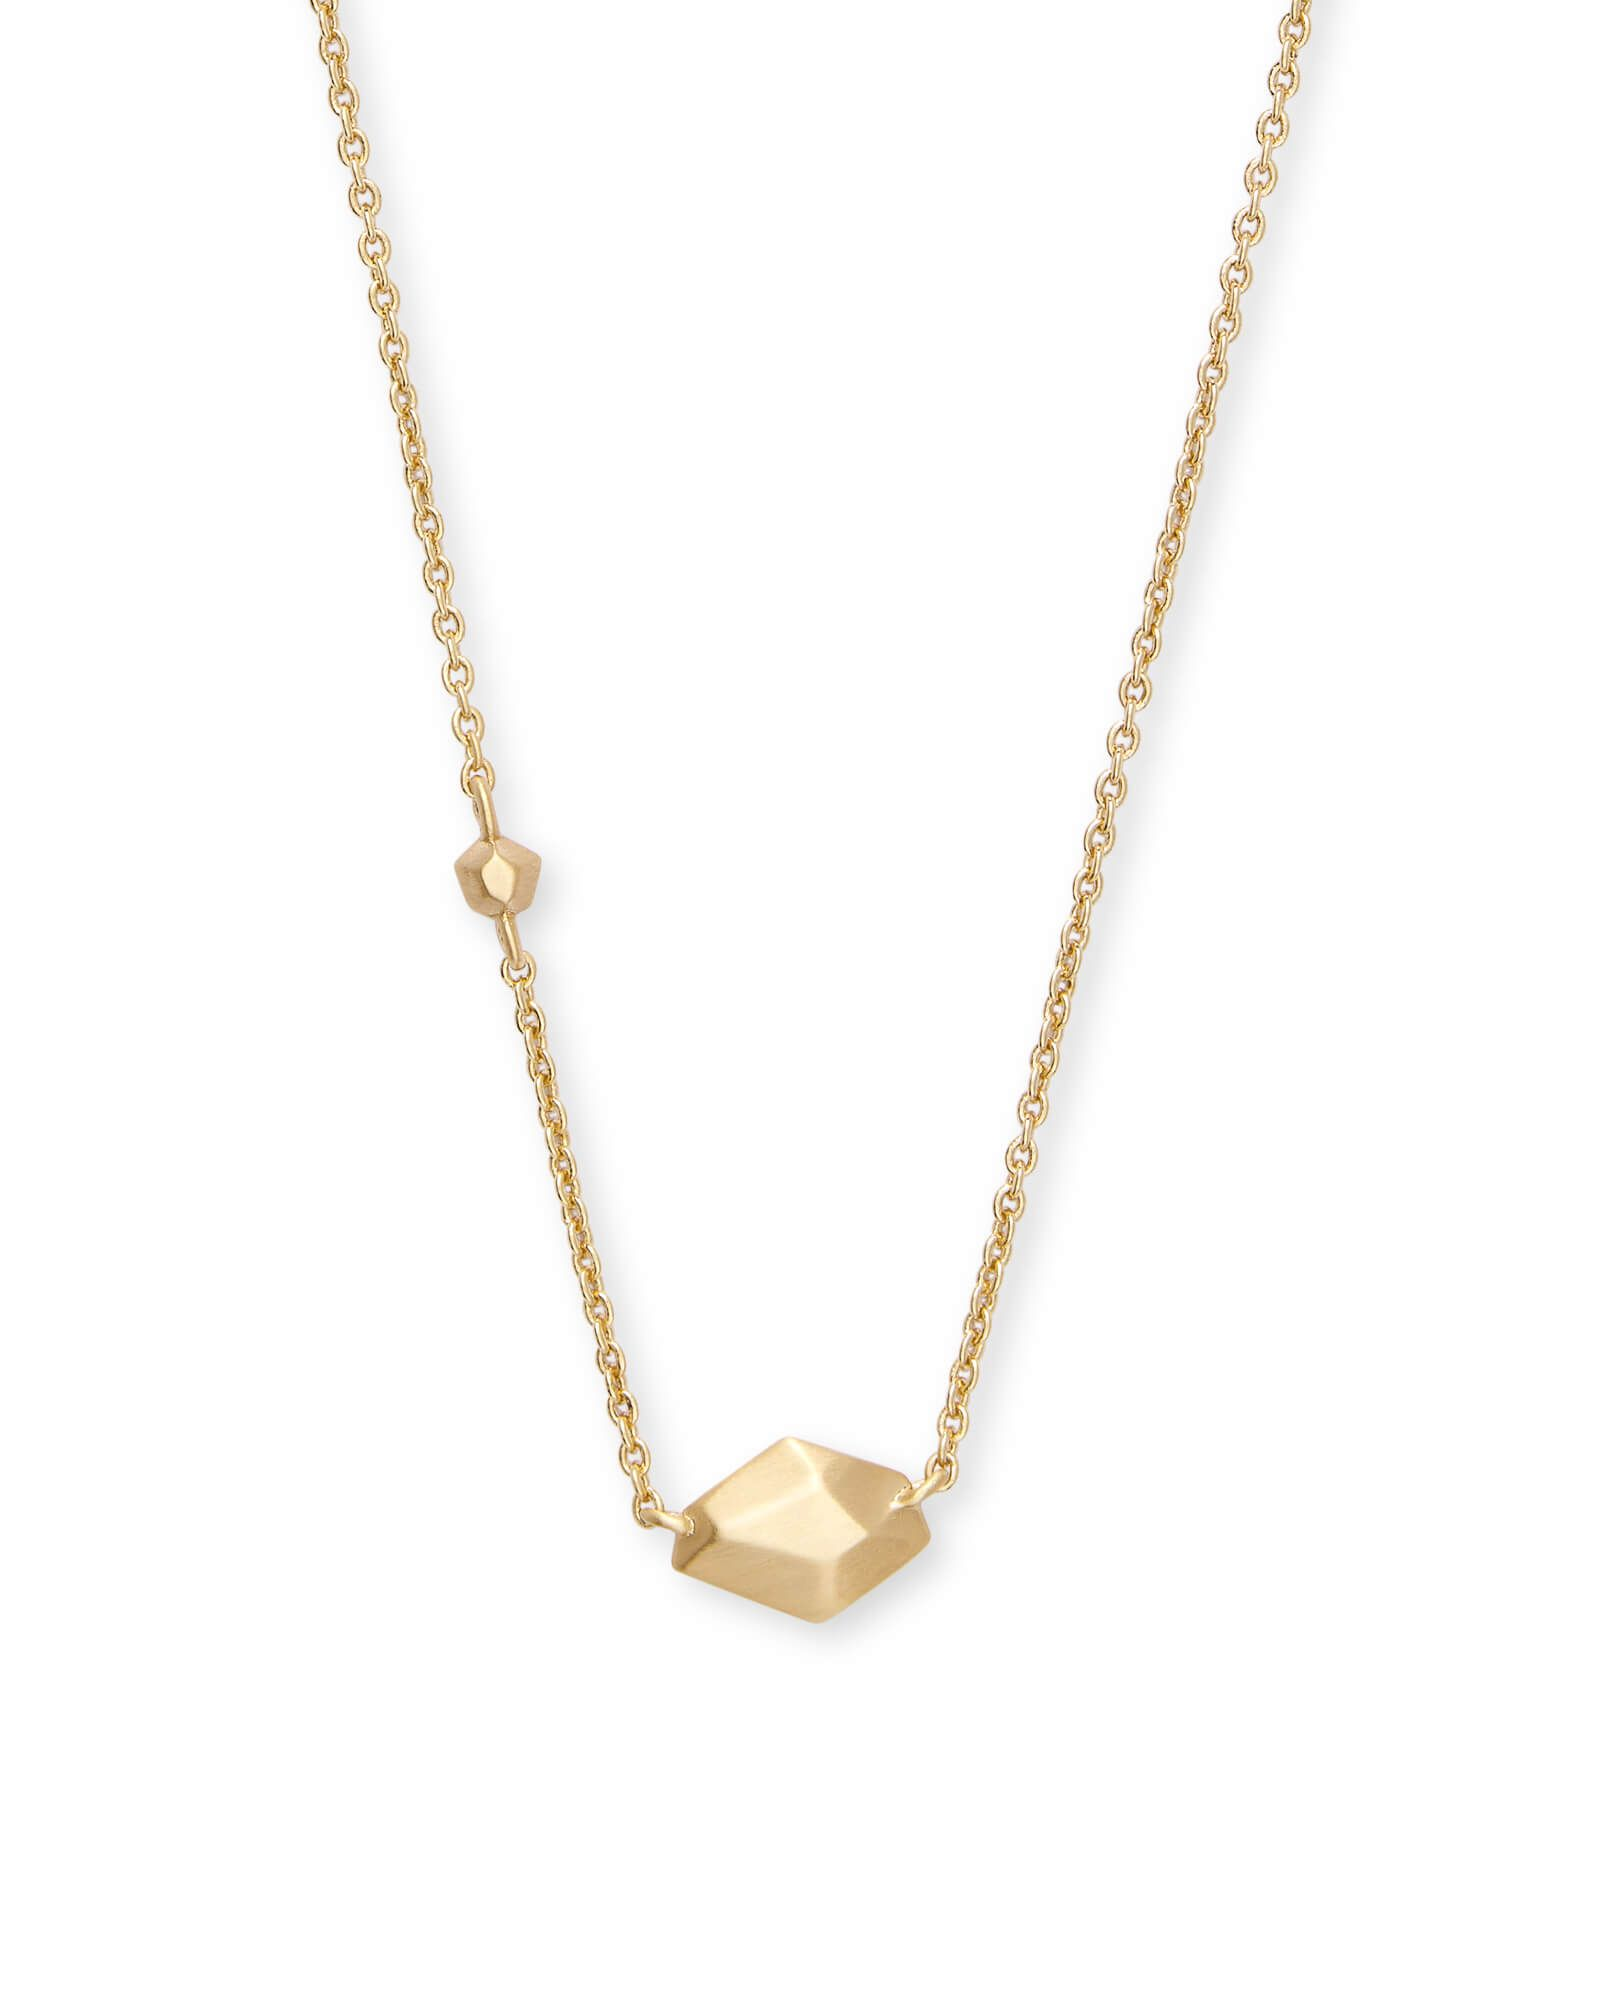 Kendra Scott Gift Card Where To Buy Ideas